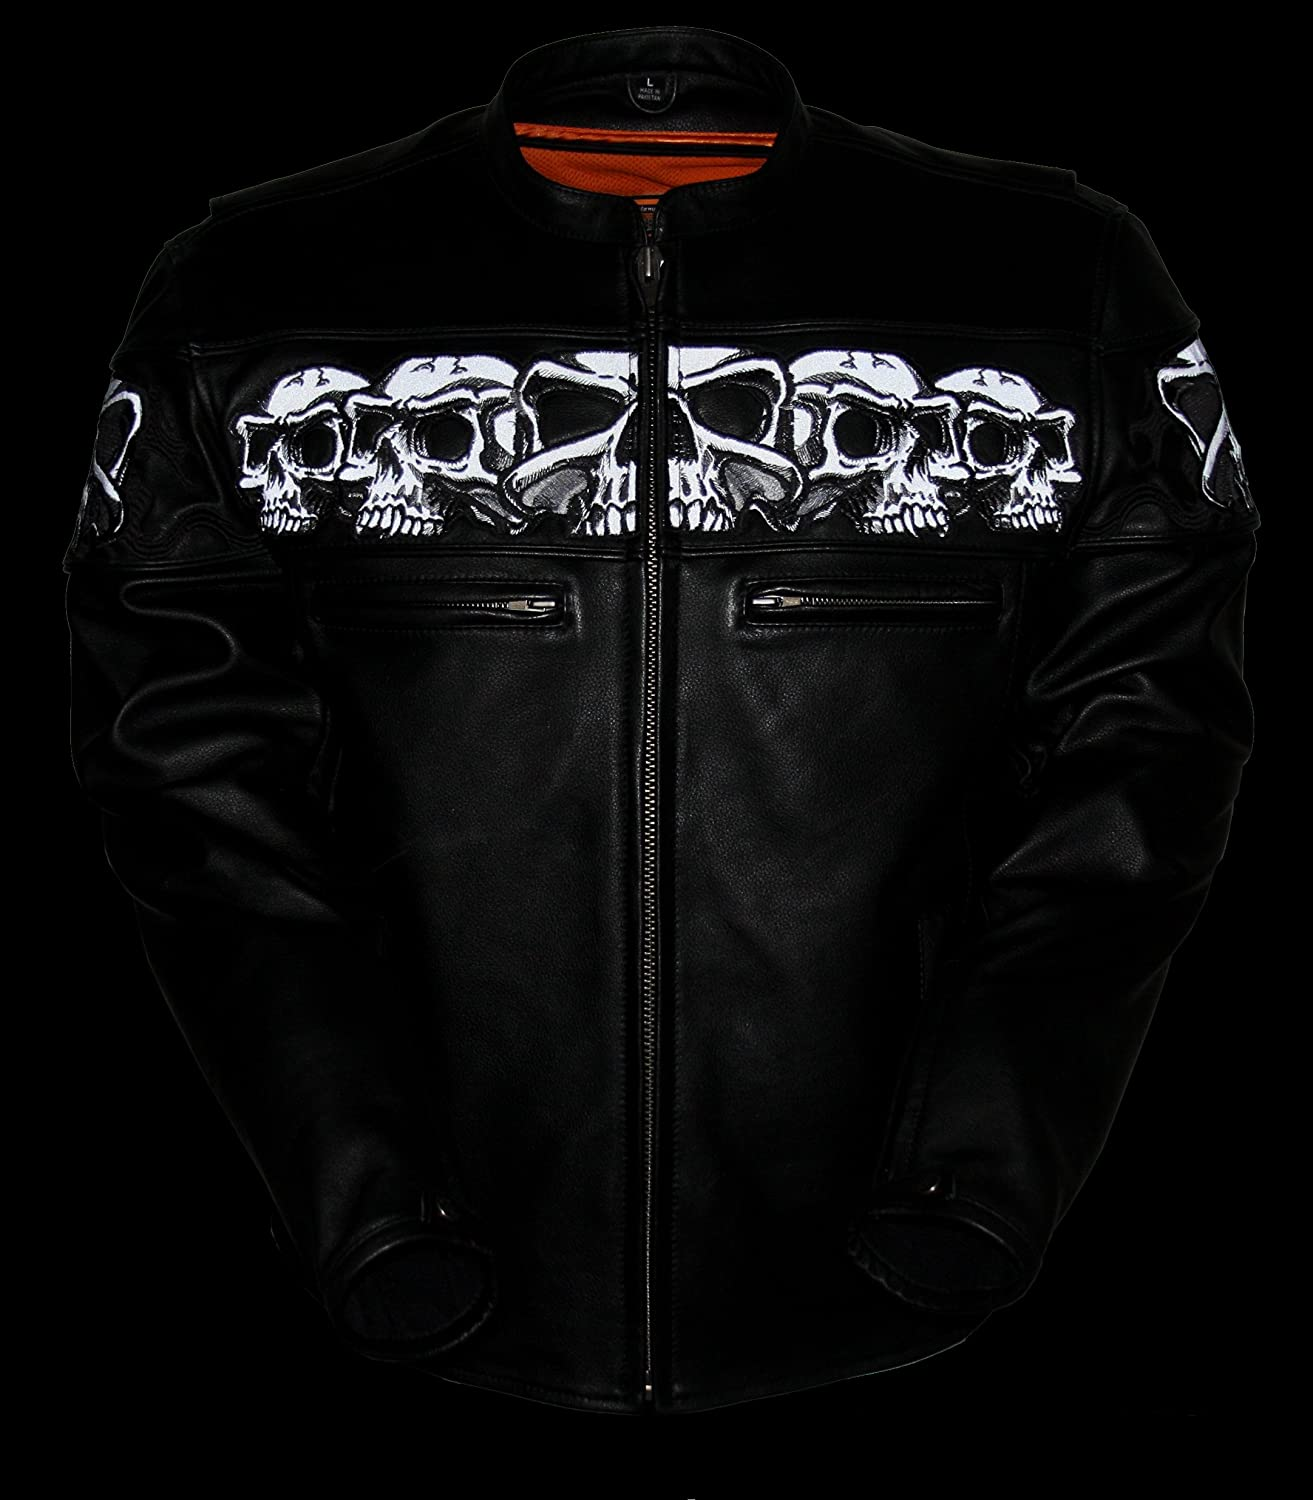 First Manufacturing Black XXX-Large Mens Sporty Scooter Jacket with Reflective Skulls